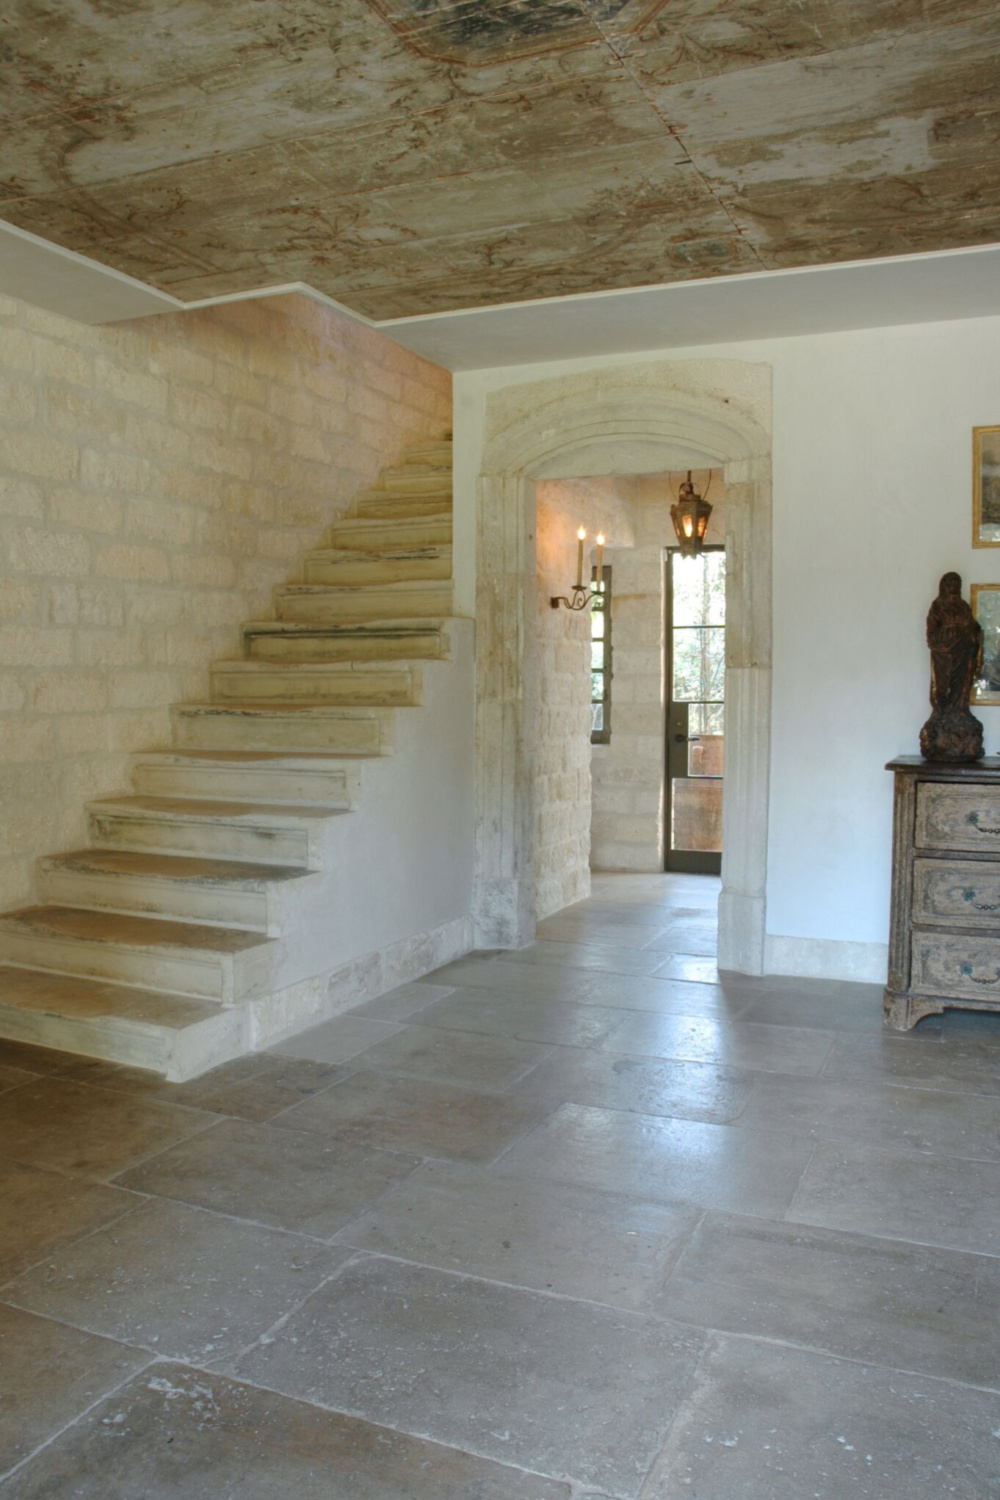 Chateau Domingue  - Ruth Gay's exquisite French home with reclaimed materials from Europe features stone staircase and wood planked ceilings.